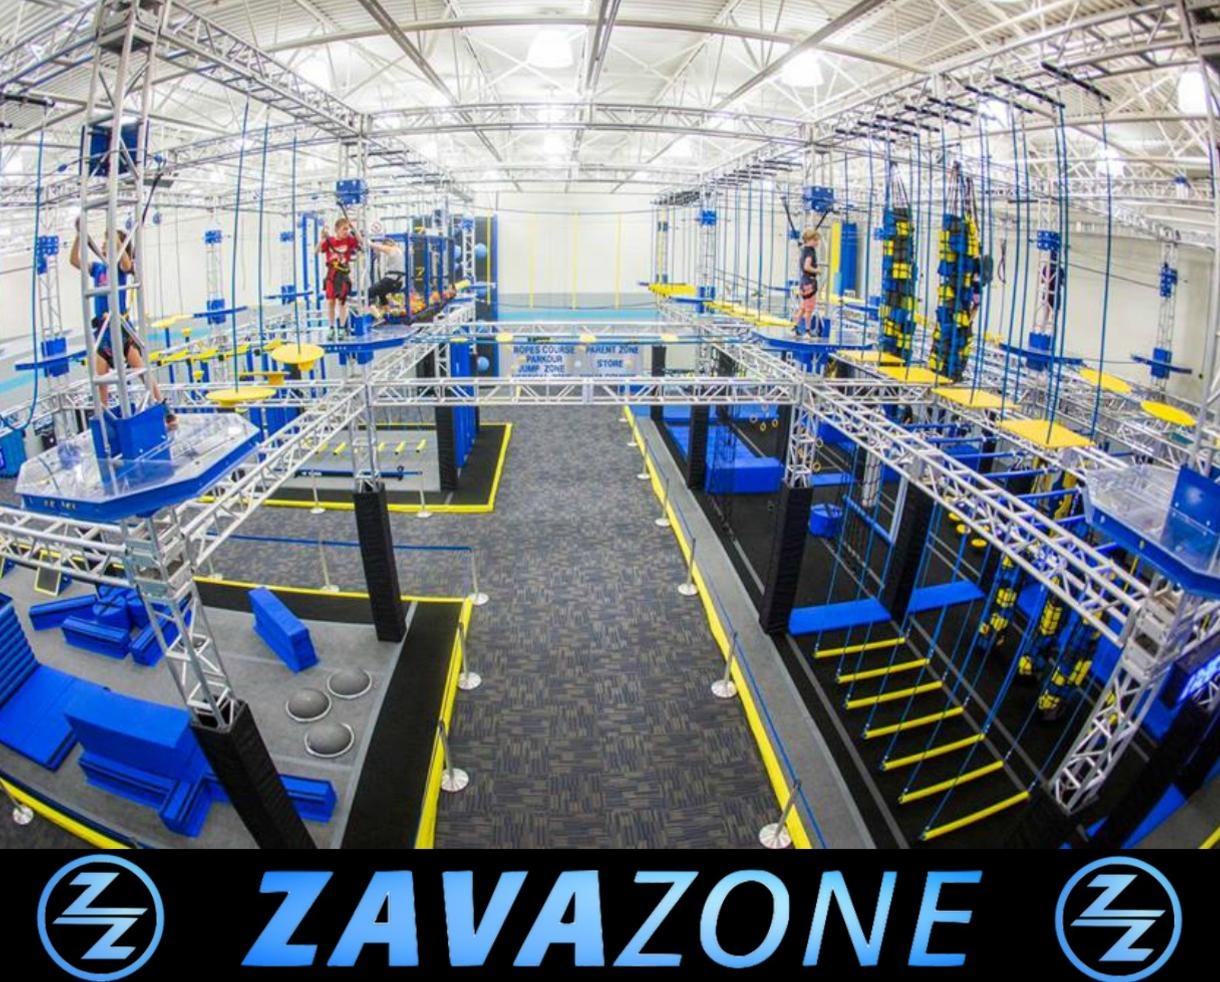 CertifiKID EXCLUSIVE! $30 for TWO 1-Hour Zavazone Passes, 2 Pair of Zavazone Socks and 2 Bottles of Gatorade or Water - Rockville Valid Monday-Friday ($50 Value- 40% Off)